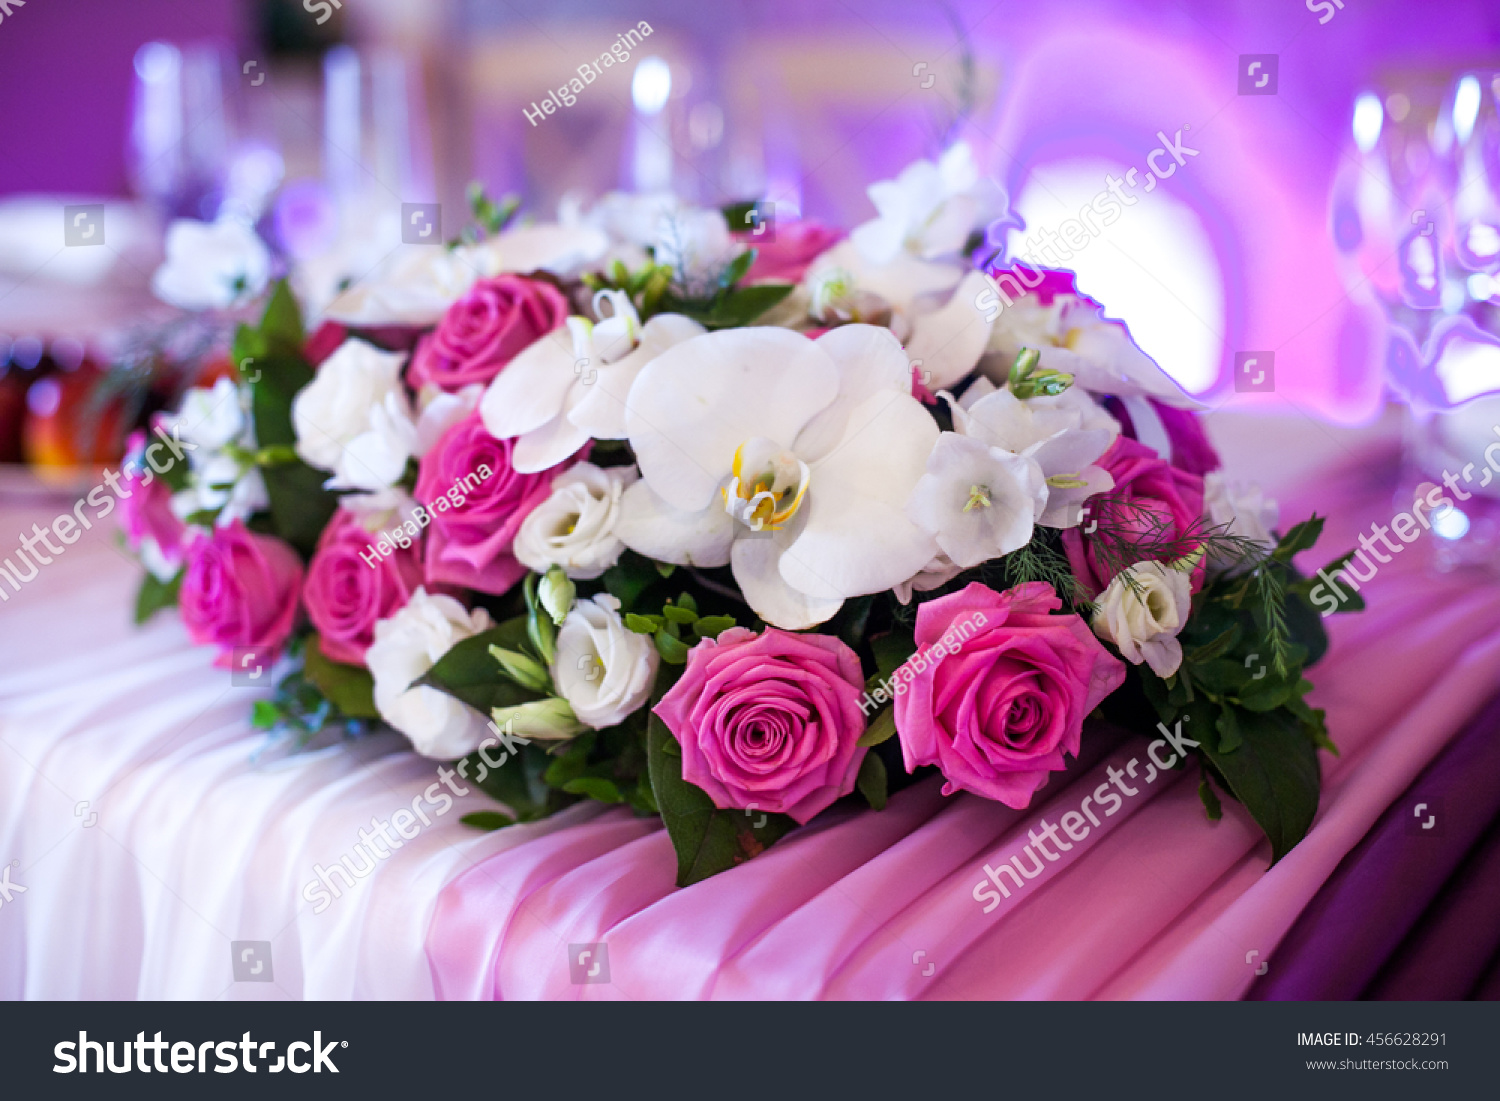 Wedding Table Decoration Cupcakes Flowers Candles Stock Photo ...